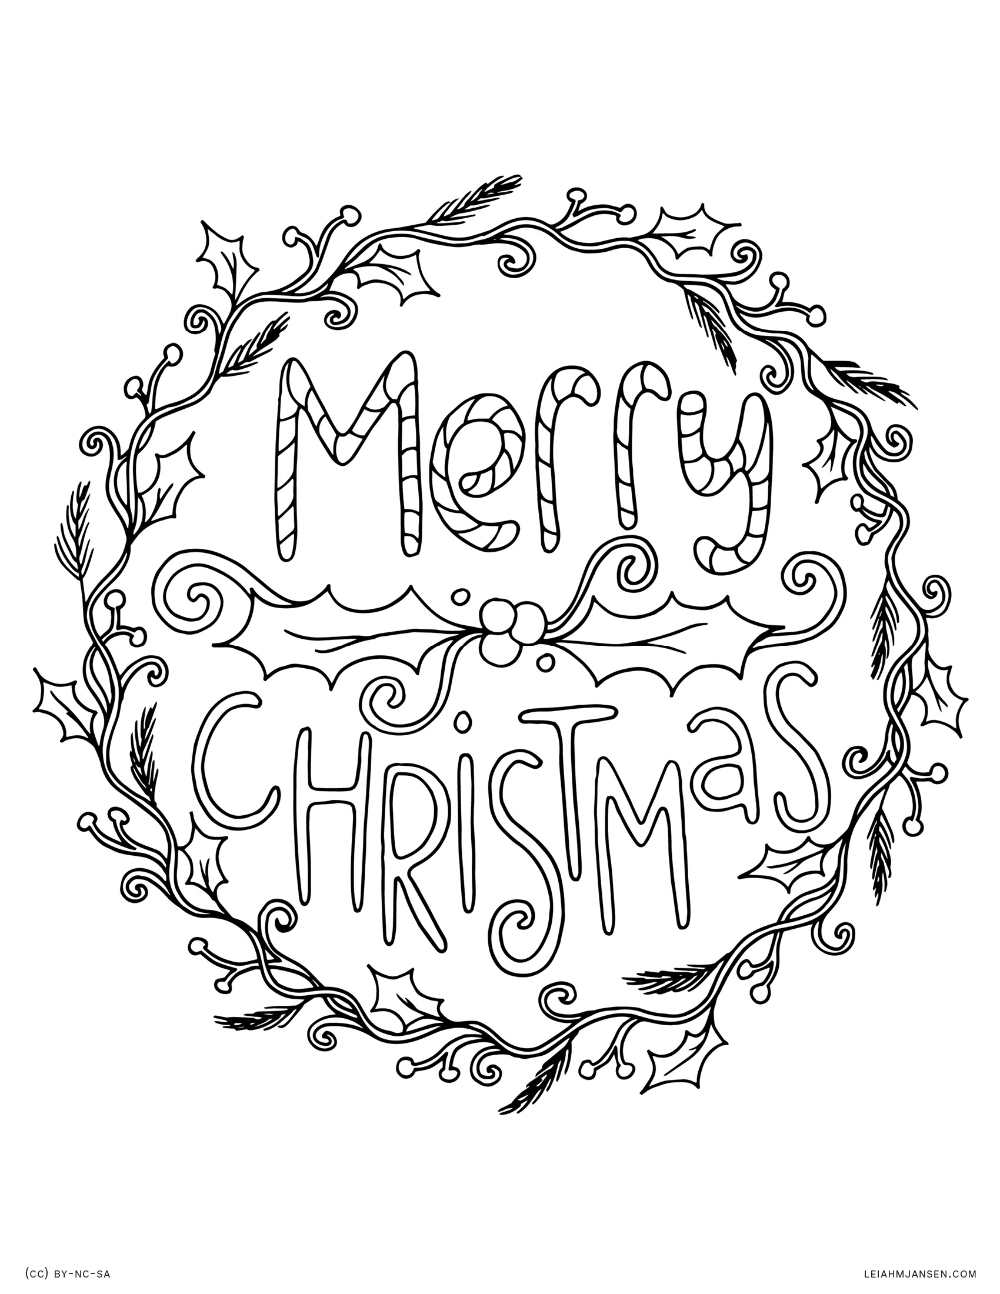 Astonishing Christmas Coloring Pages For Adults Picture Ideas Amazi Printable Christmas Coloring Pages Merry Christmas Coloring Pages Christmas Coloring Sheets